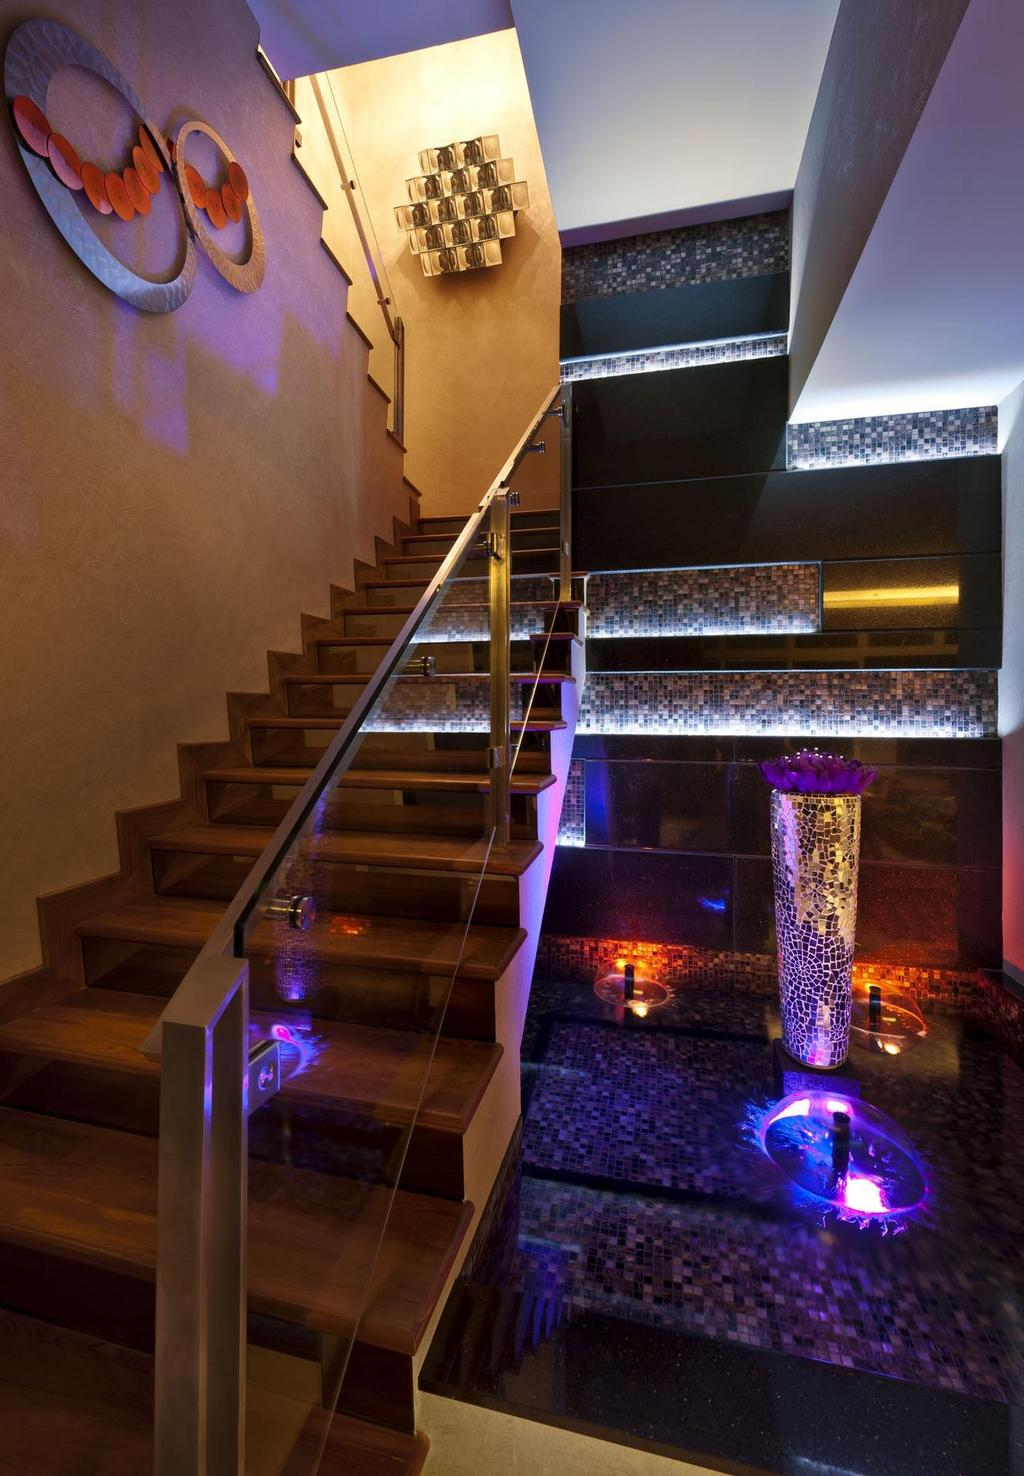 Contemporary, Condo, Cascadia, Interior Designer, Space Vision Design, Stairs, Staircase, Wall Art, Wall Sculpture, Mosaic, Mosaic Tiles, Water Feature, Fountain, Concealed Lighting, Handrails, Banister, Handrail, Chair, Furniture